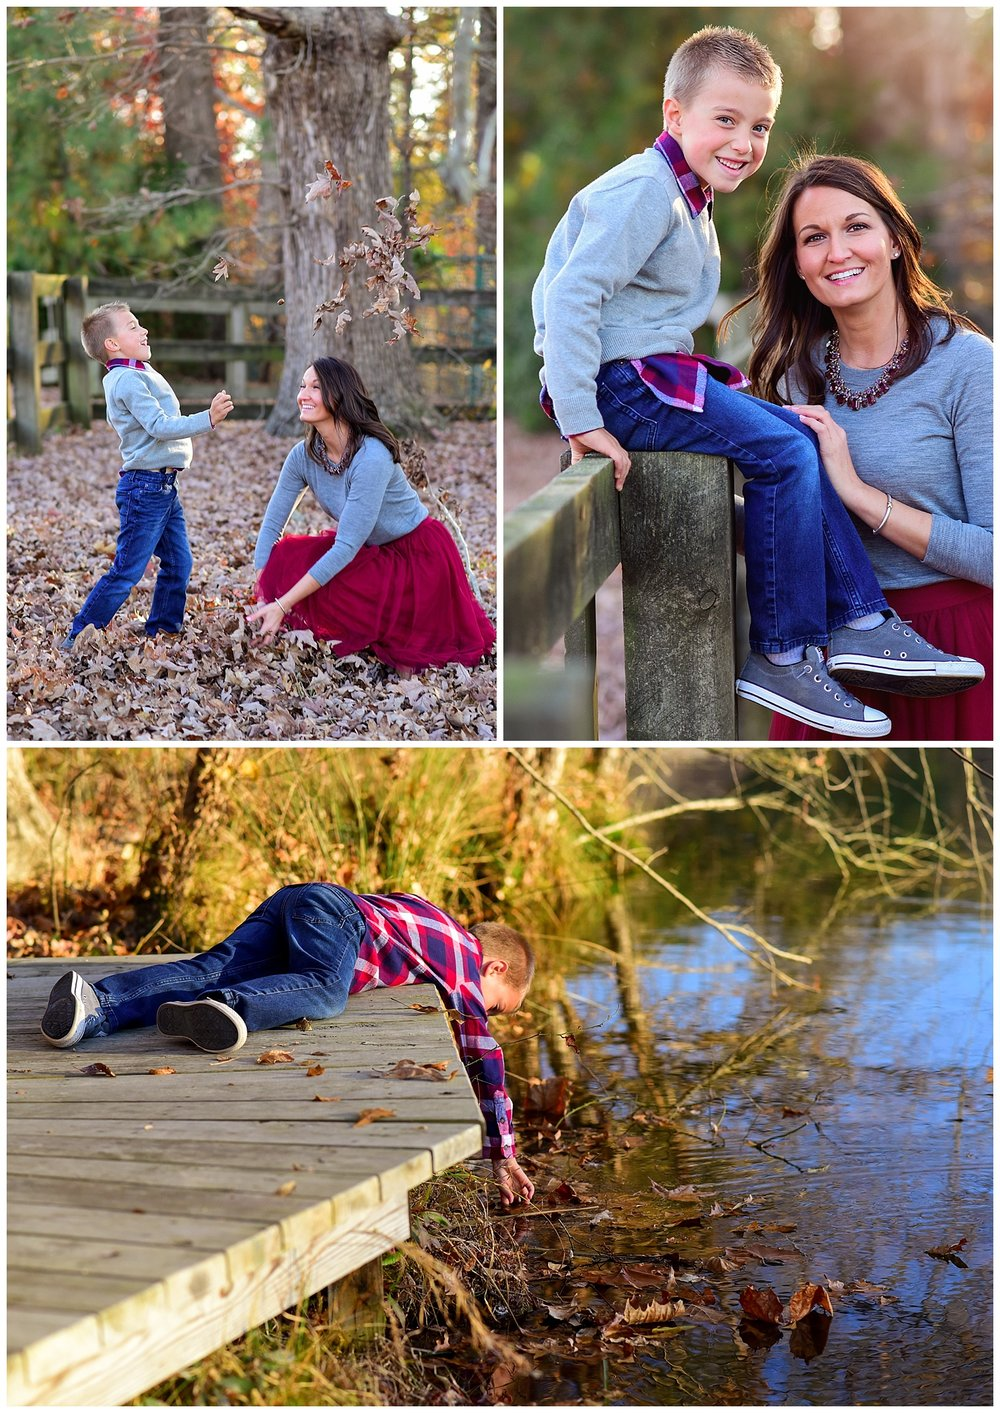 Yates mill park family photos